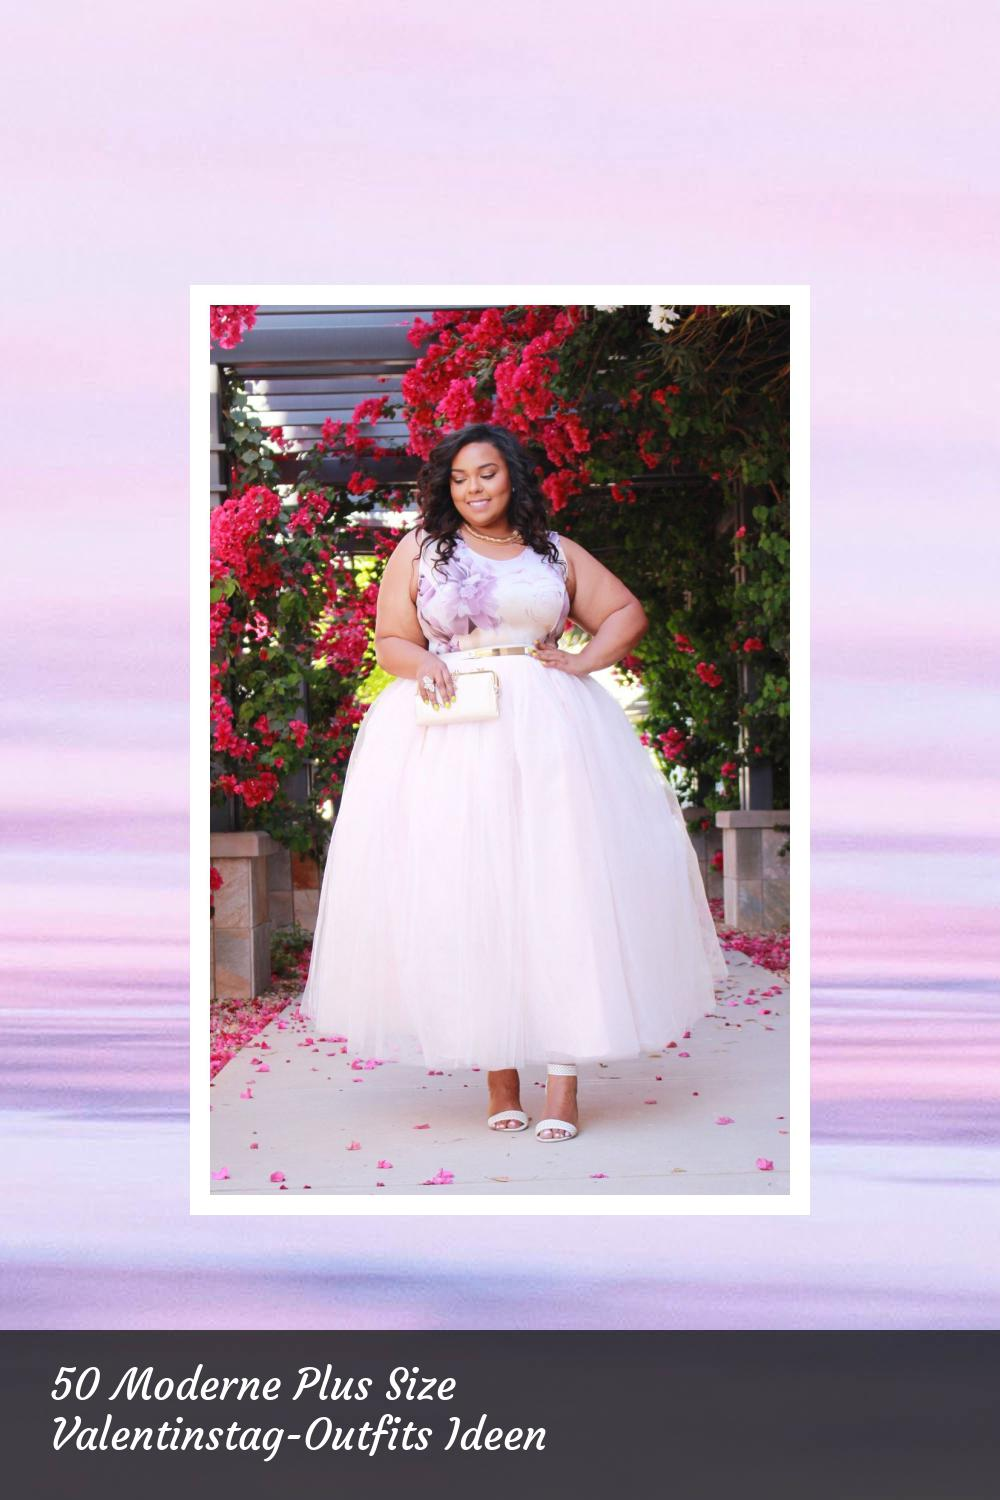 50 Moderne Plus Size Valentinstag-Outfits Ideen 10